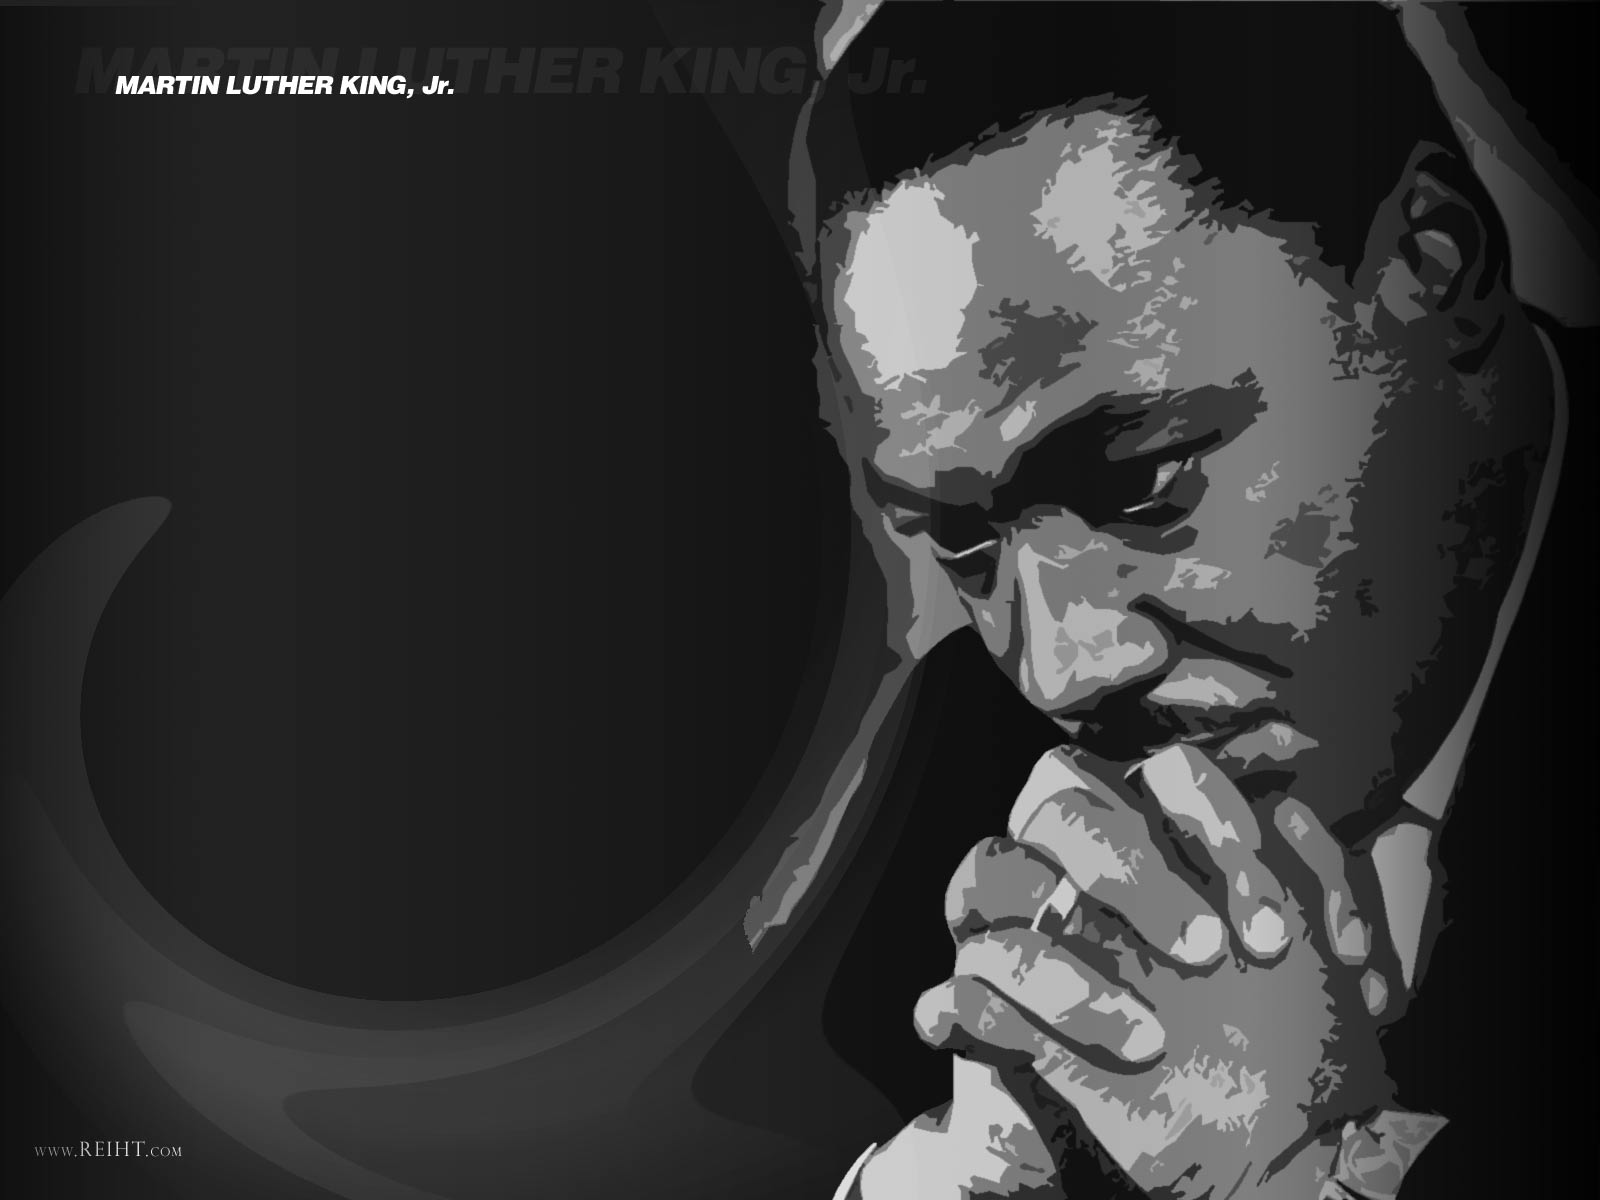 Martin luther king jr reiht martin luther king jr image for background suitable for powerpoint template toneelgroepblik Images